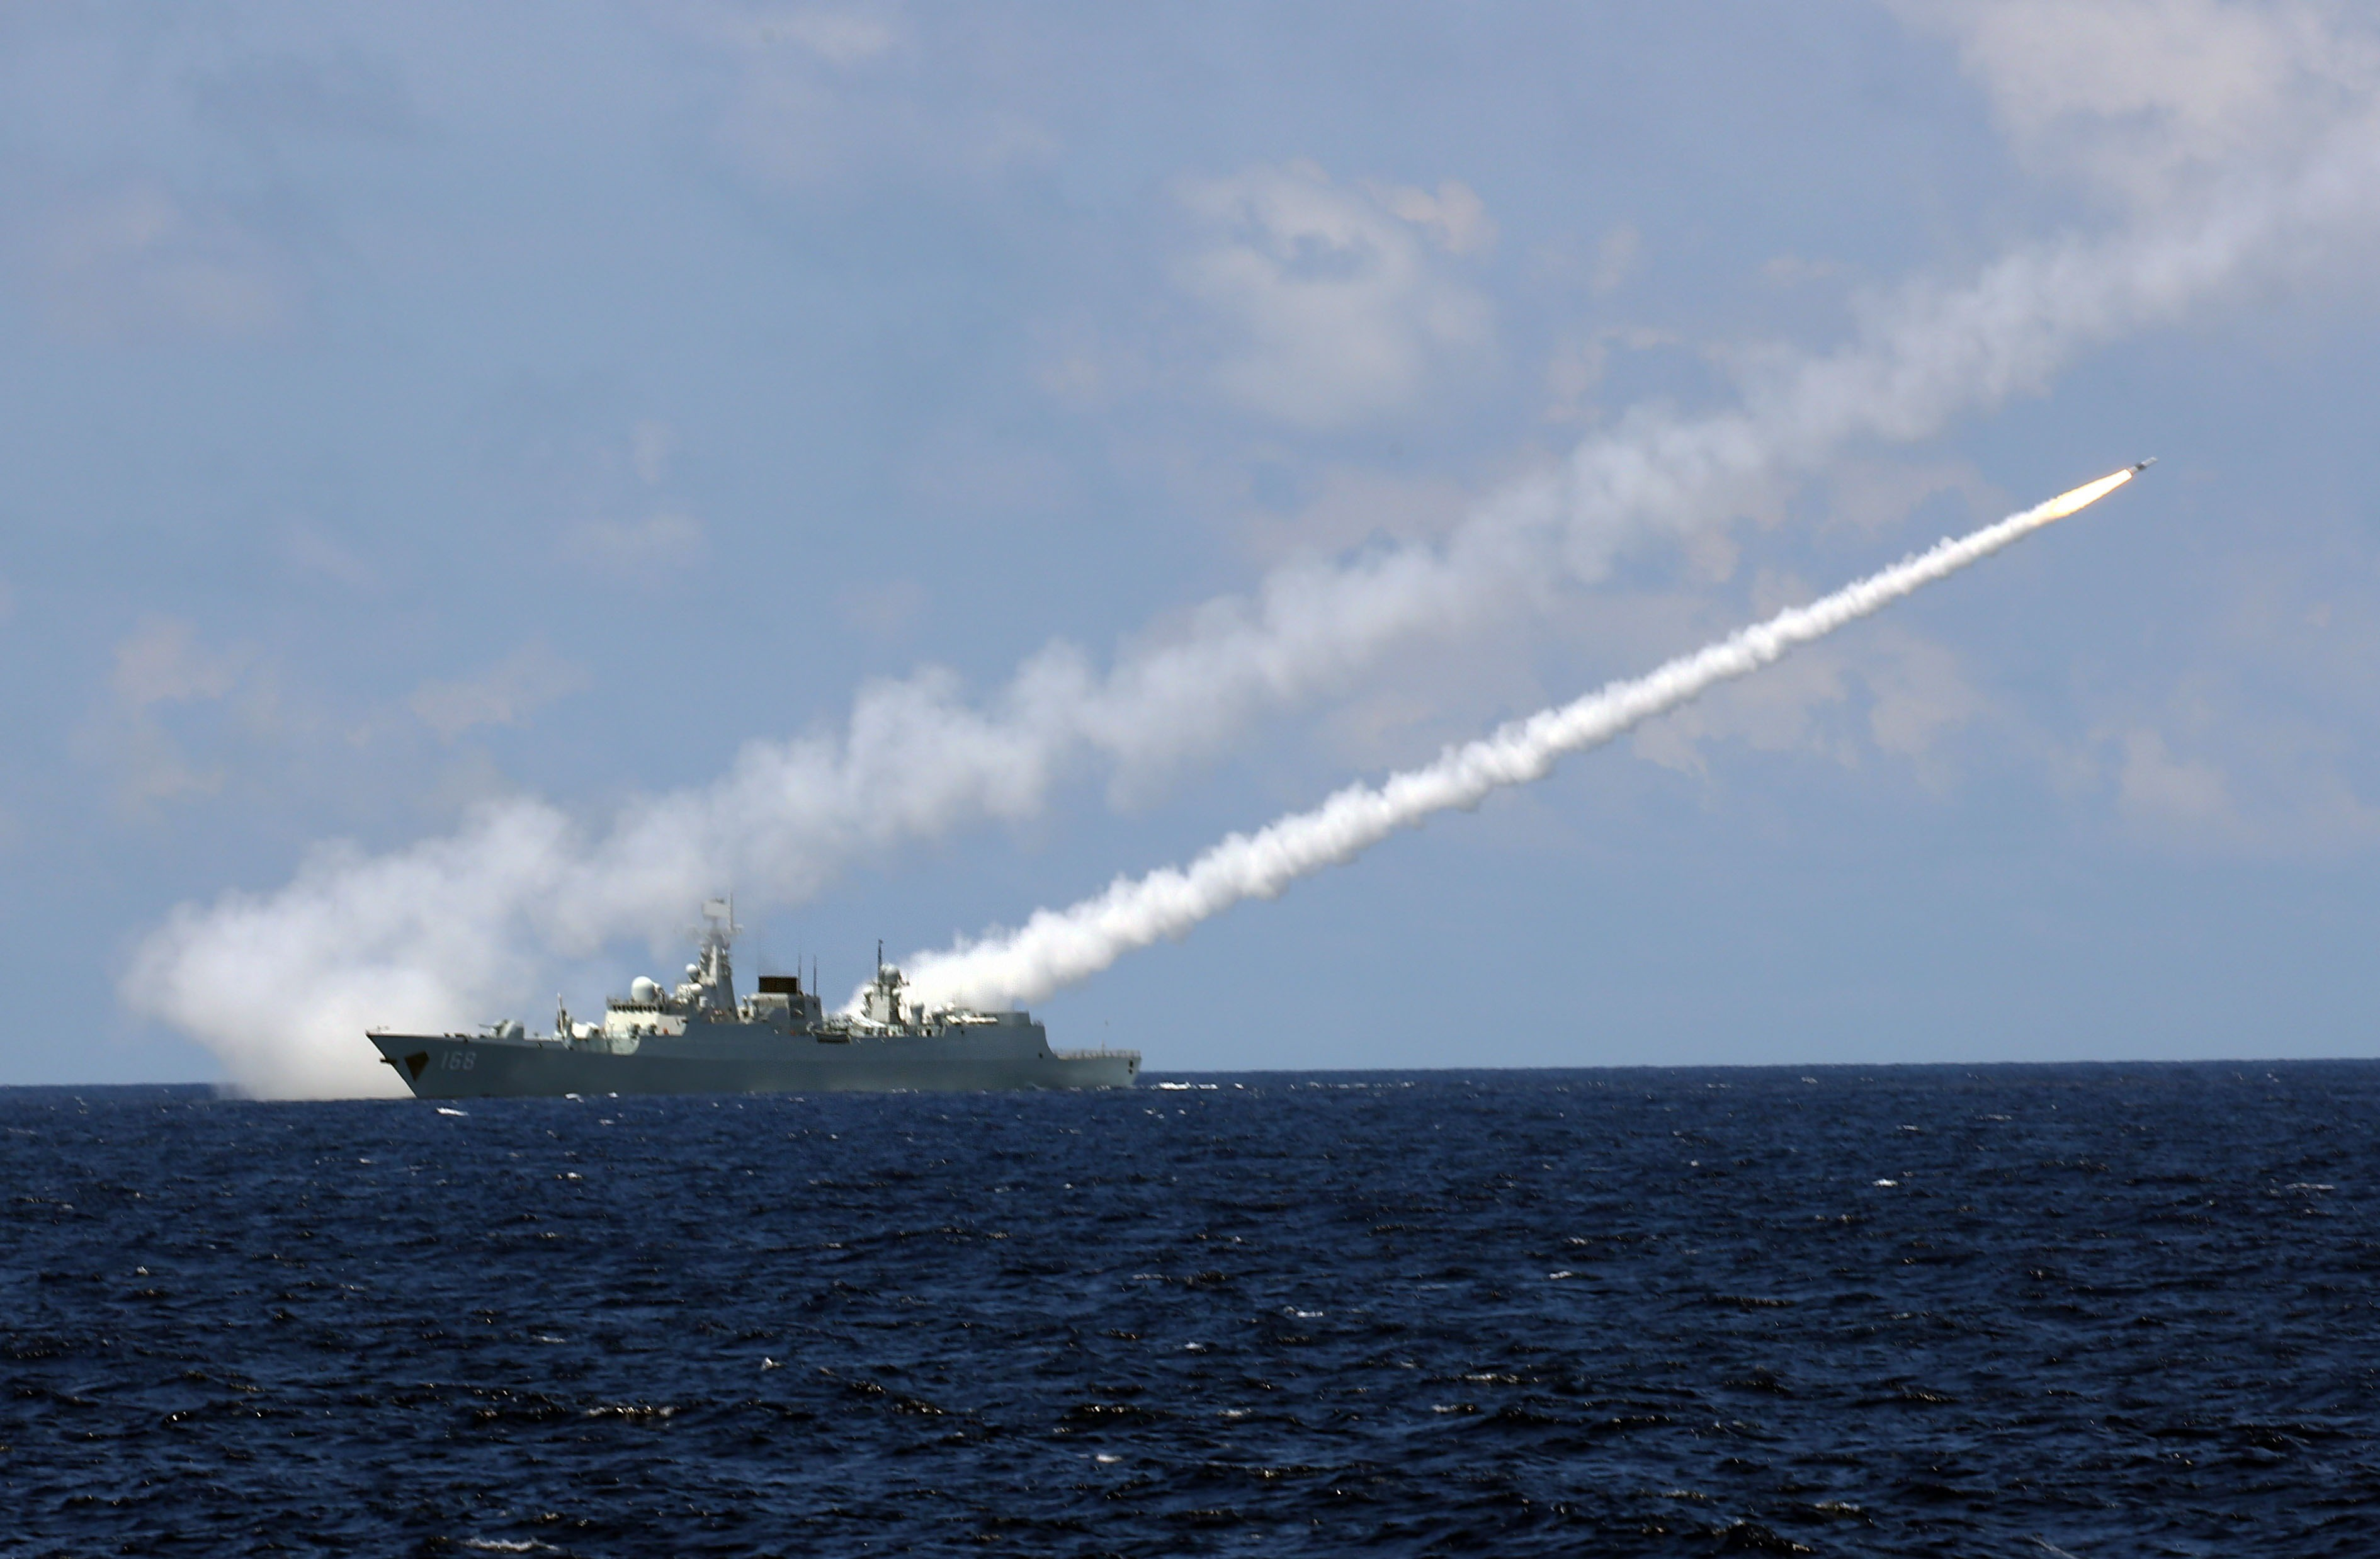 Missile destroyer Guangzhou launches an air-defense missile during a military exercise in the water area near south China's Hainan Island and Xisha islands on July 8, 2016